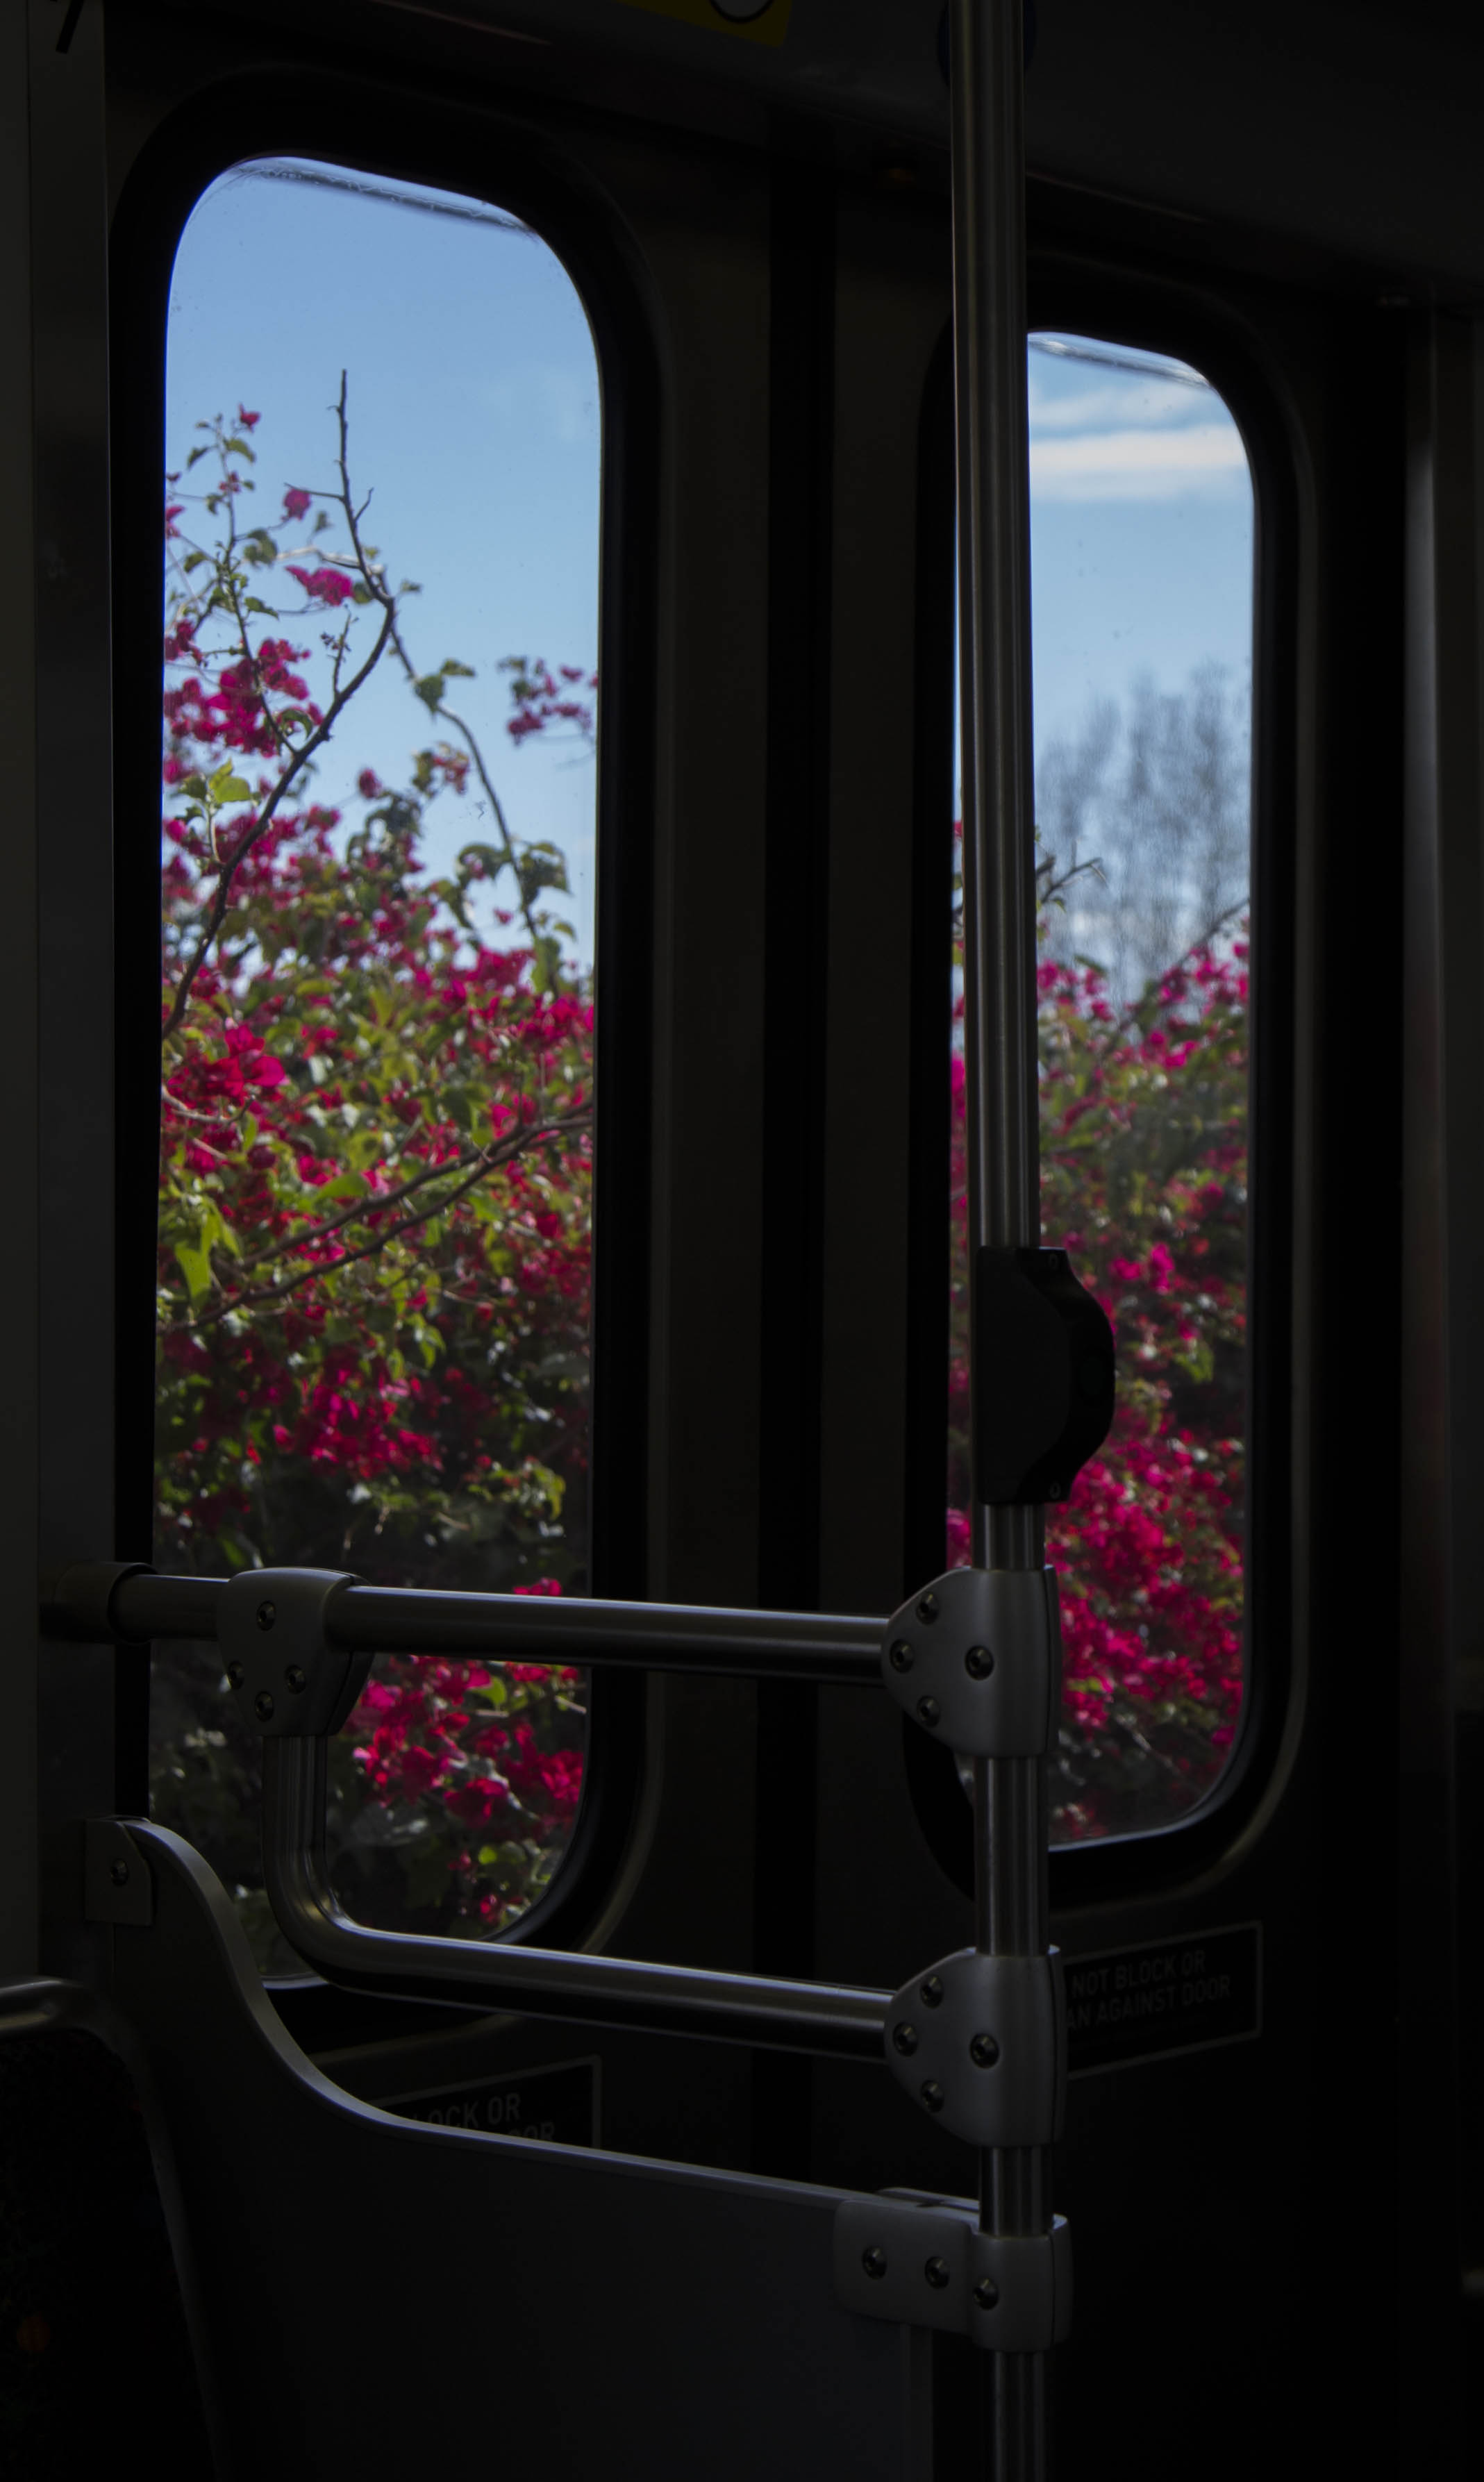 Bougainvillea just outside the window